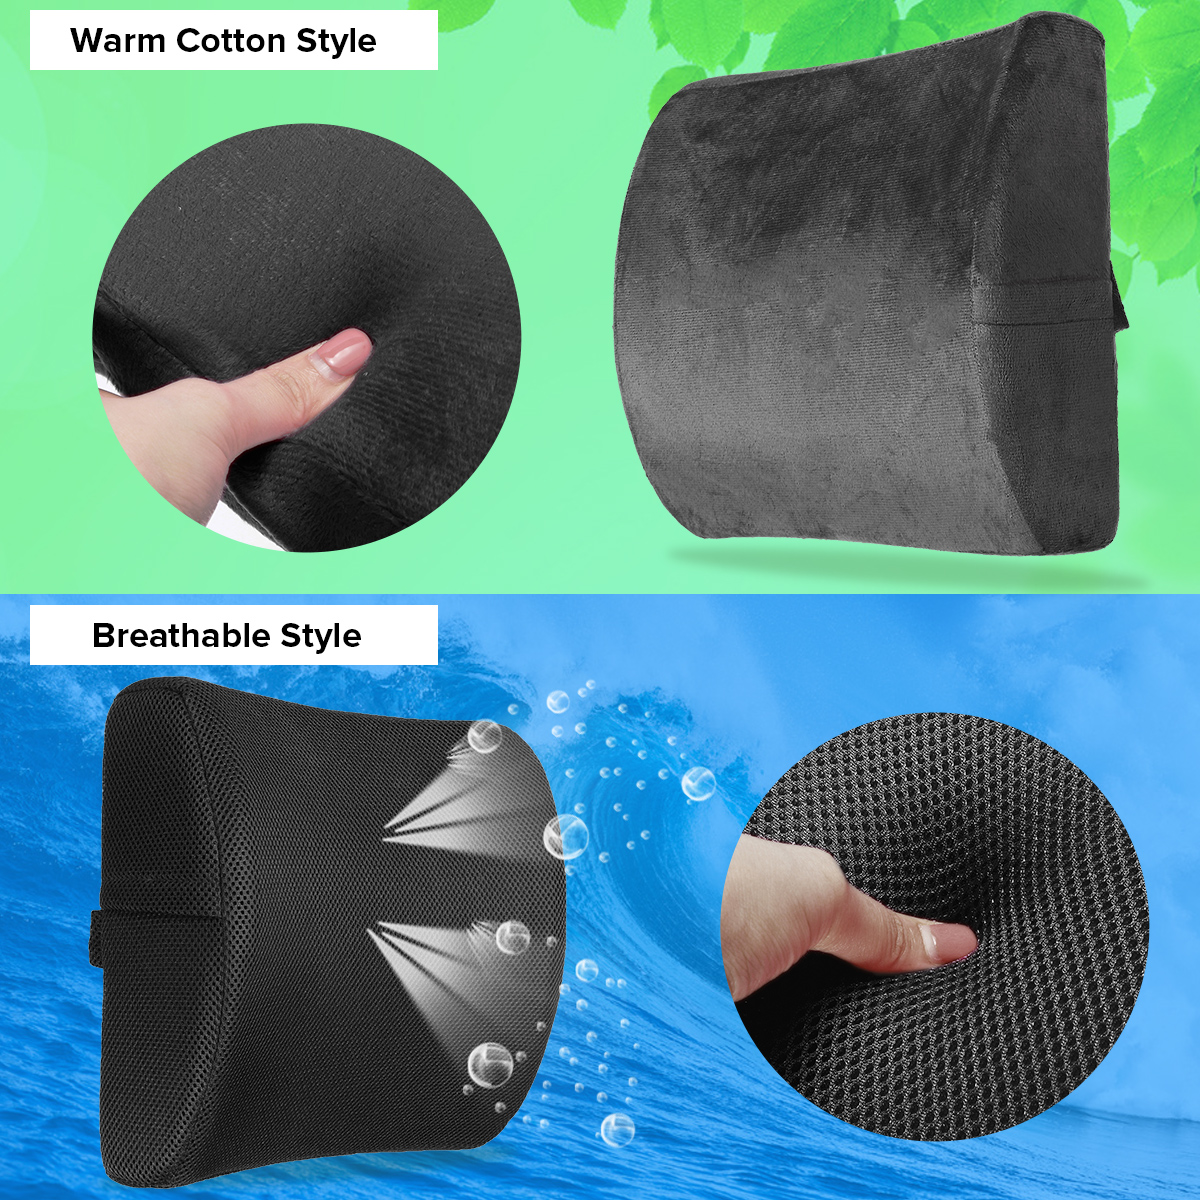 6 Color Lumbar Pillows Made Of Soft Foam For Car Seat To Support And Relieve Back Pain 3